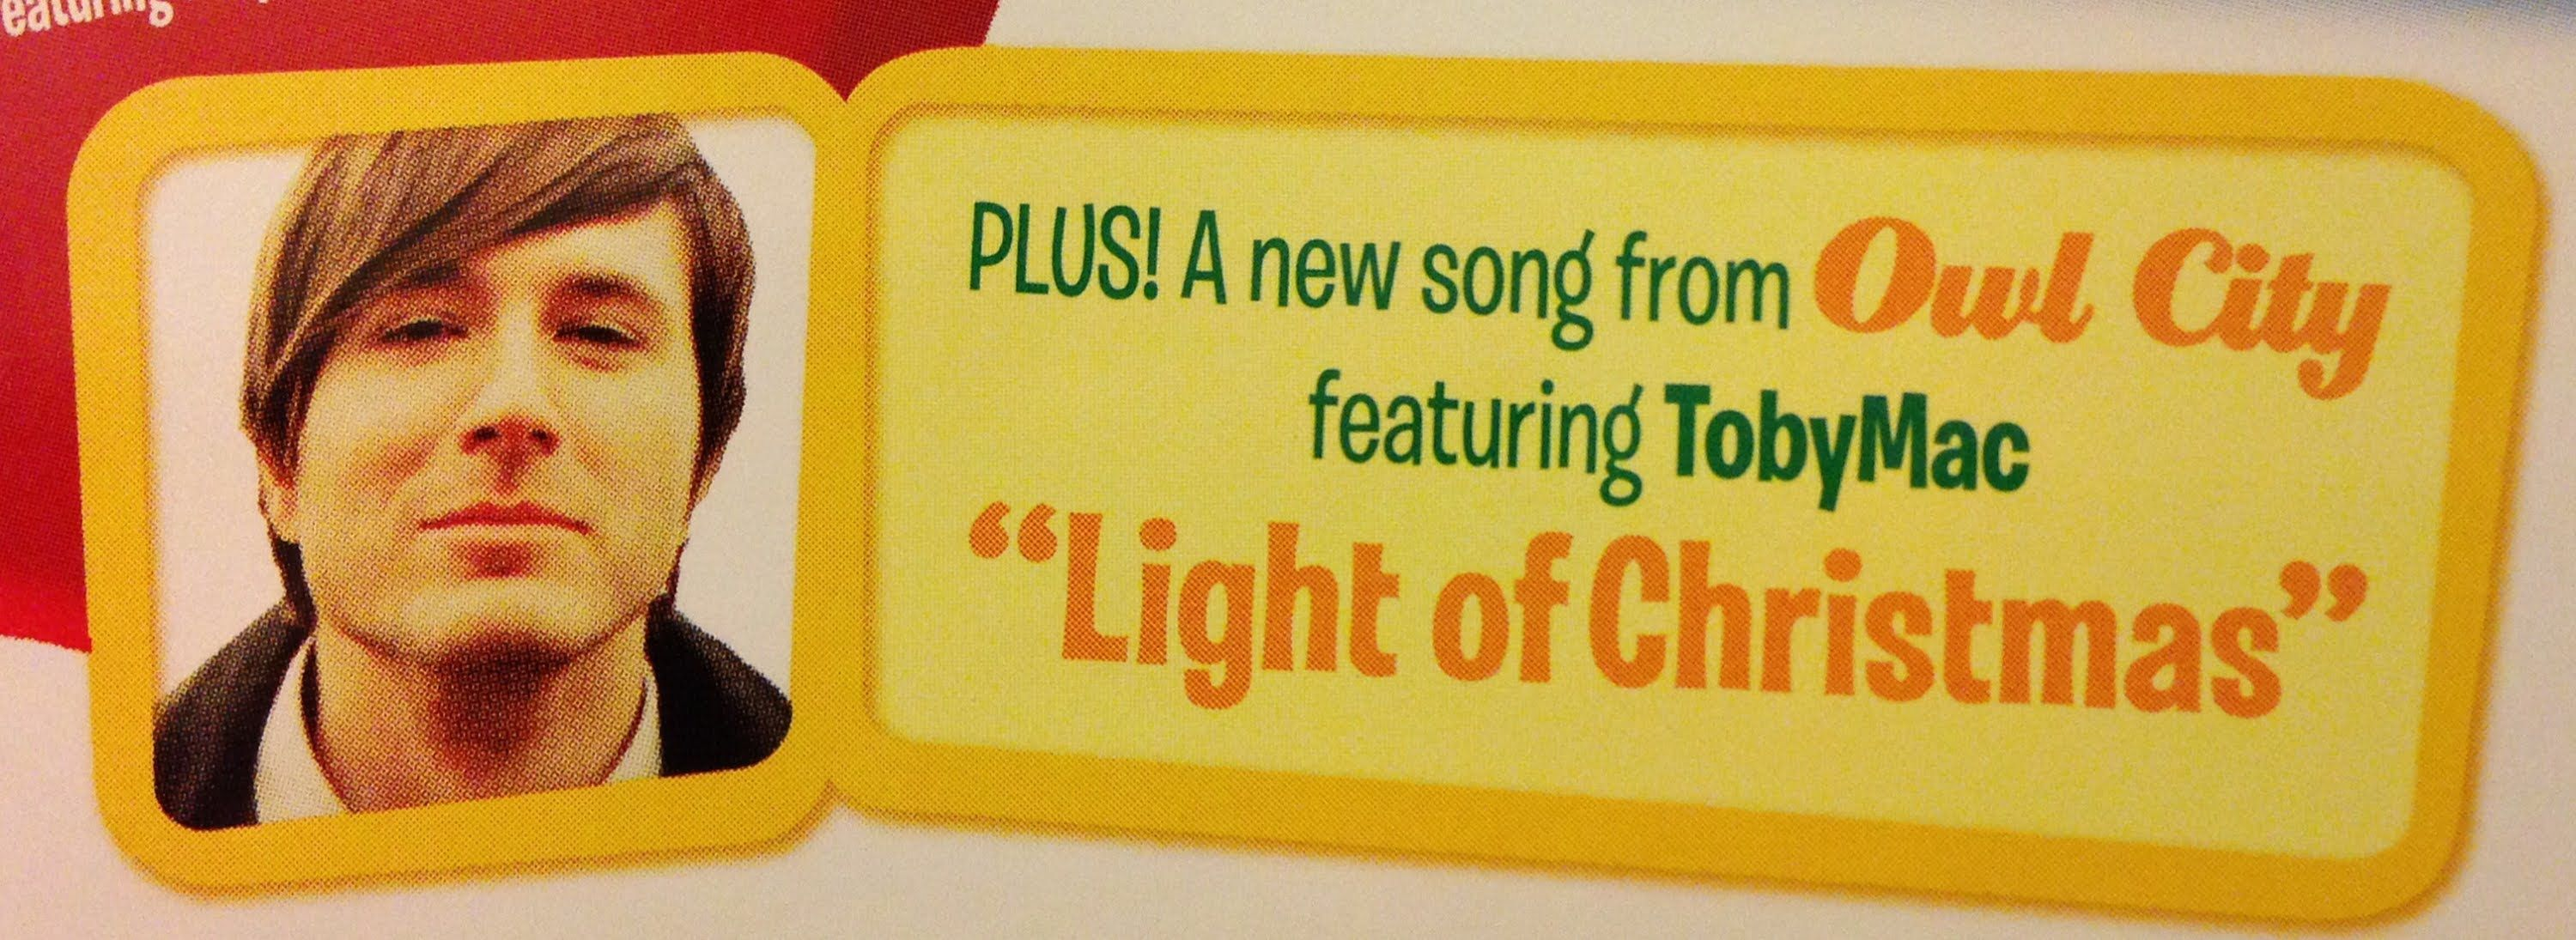 Light Of Christmas Lyrics.Check Out This New Christmas Song Now Playing On Air1 By Owl